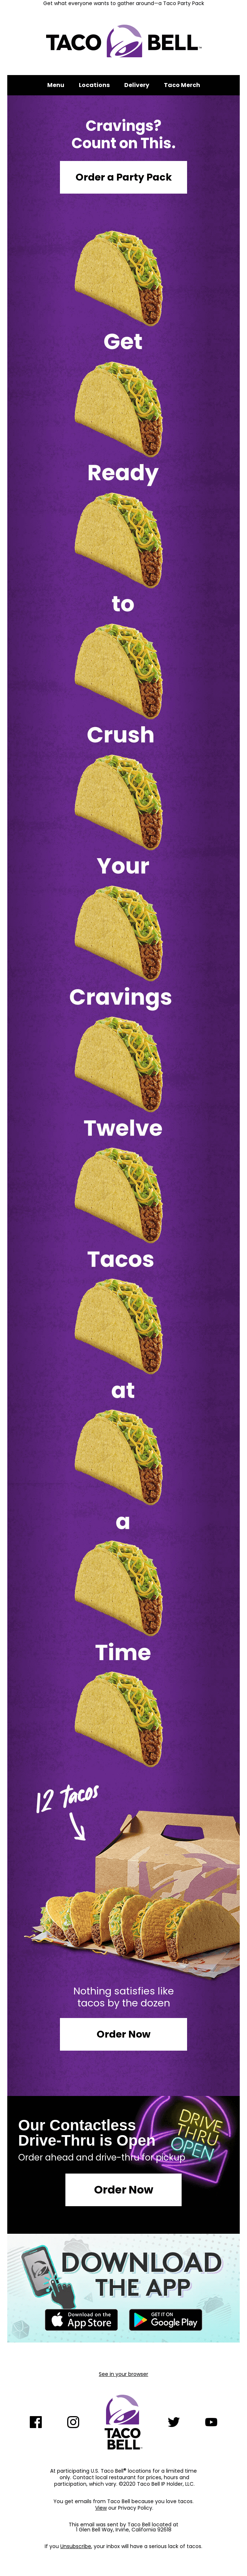 A dozen tacos? Your crew is here for it 🌮🌮🌮